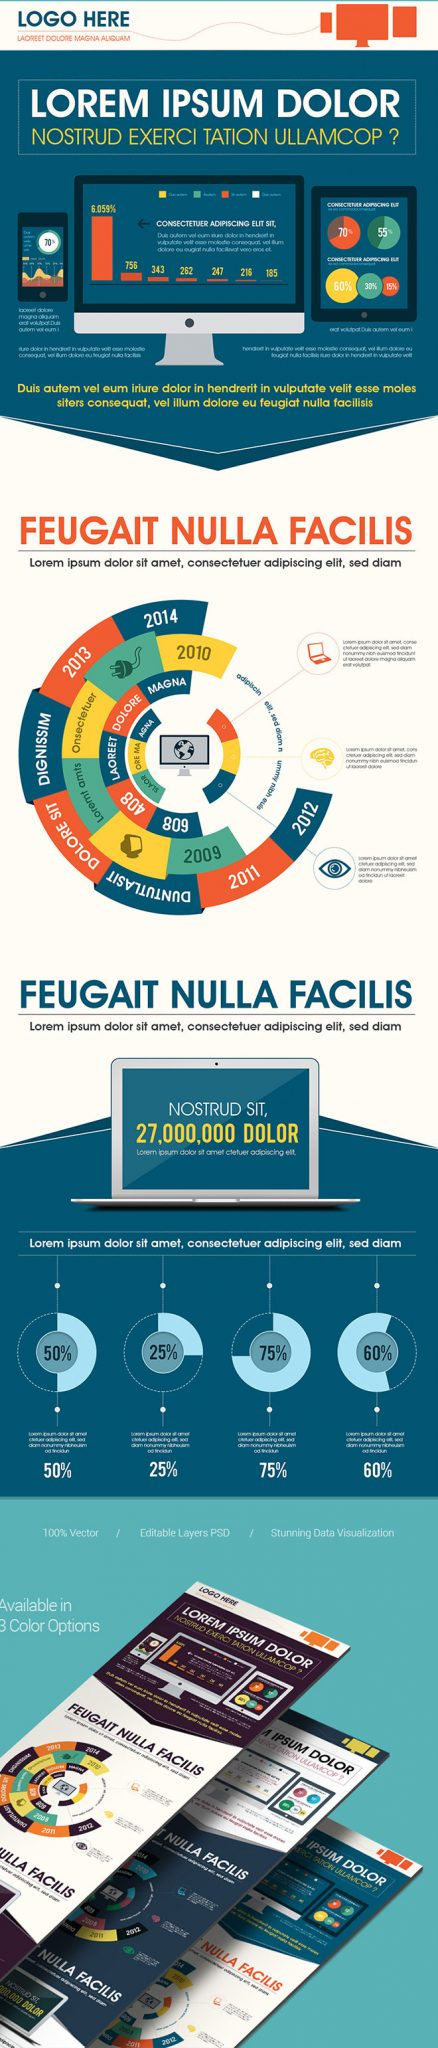 Free-Technology-Infographic-Templates